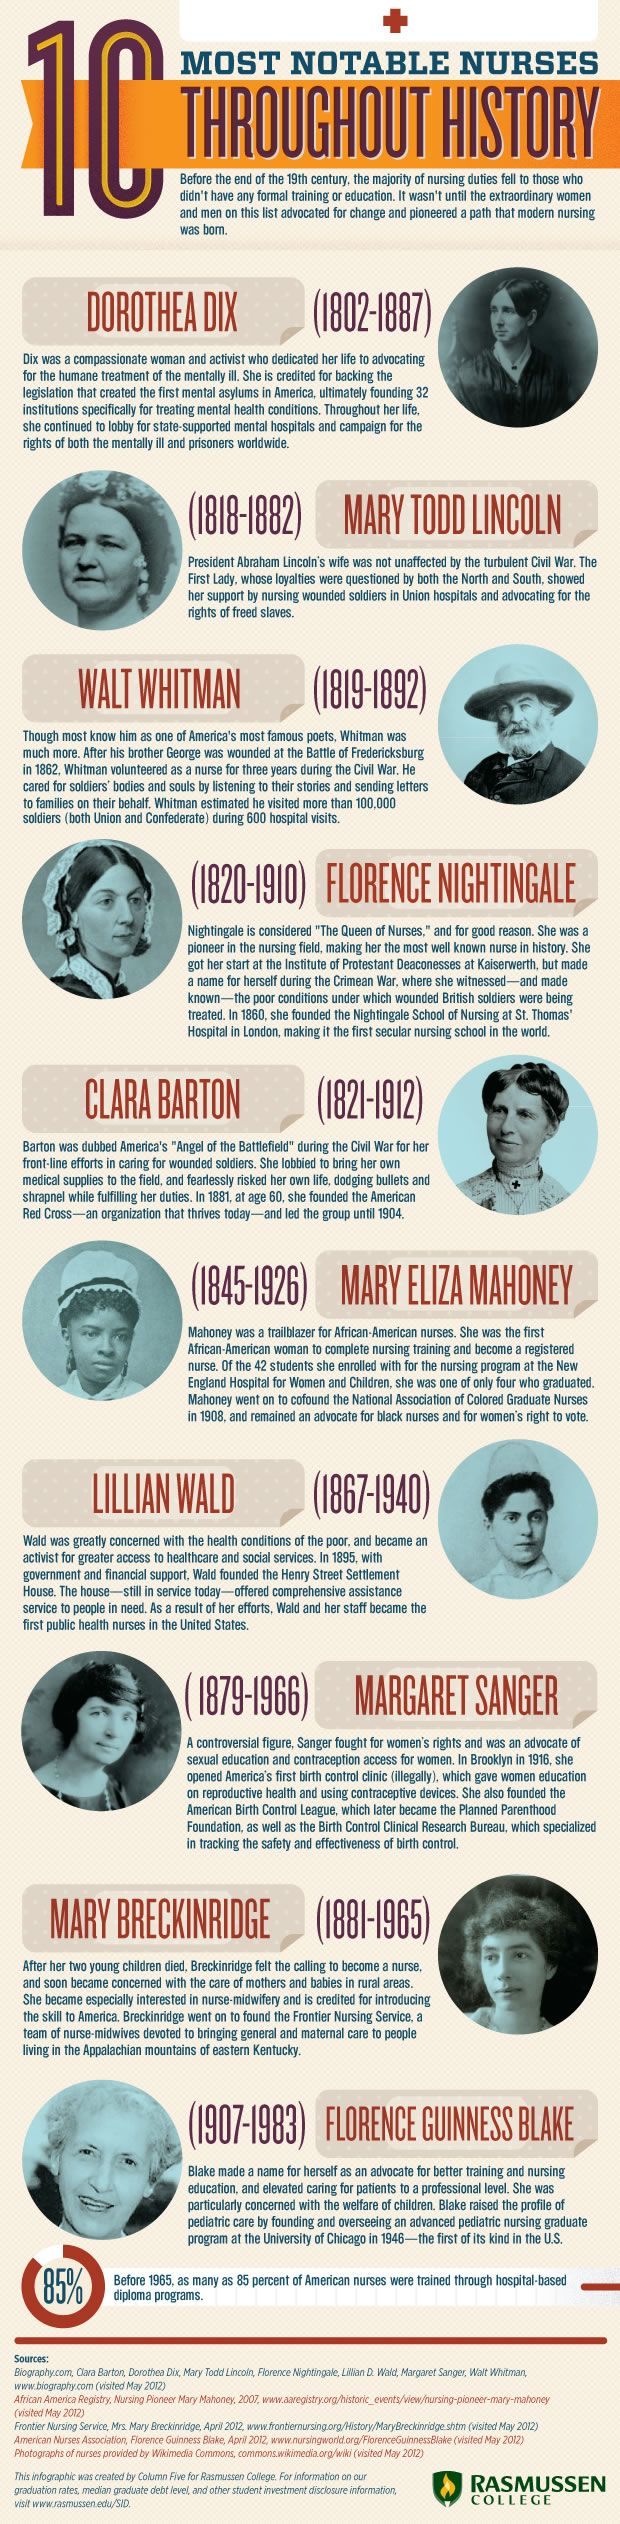 ☞ MD ☆☆☆ The 10 most notable nurses throughout history.